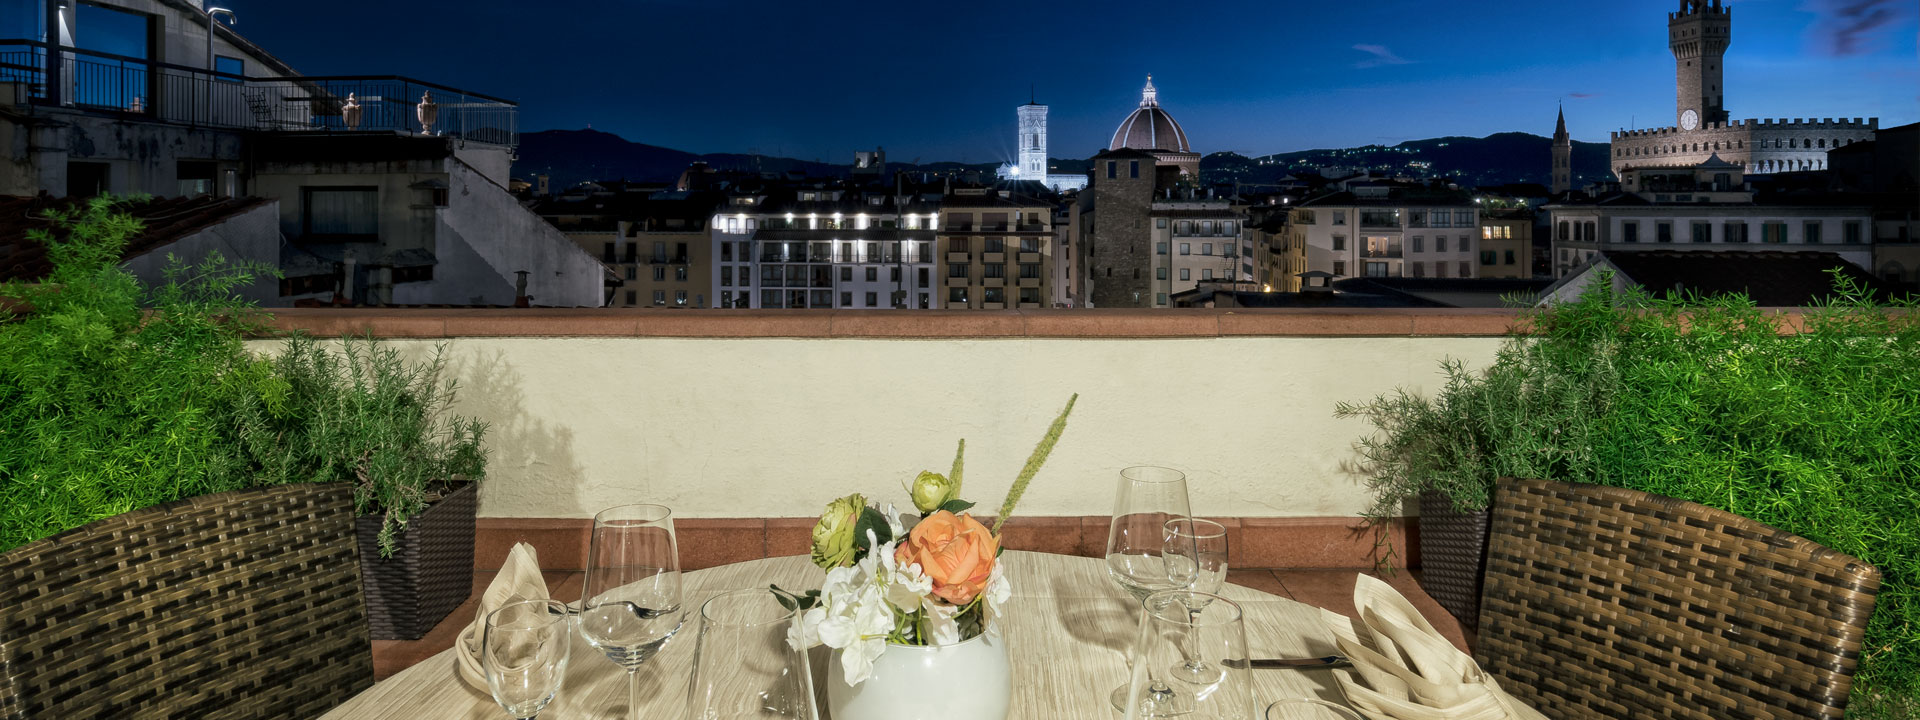 h-florence-restaurant-with-panoramic-view